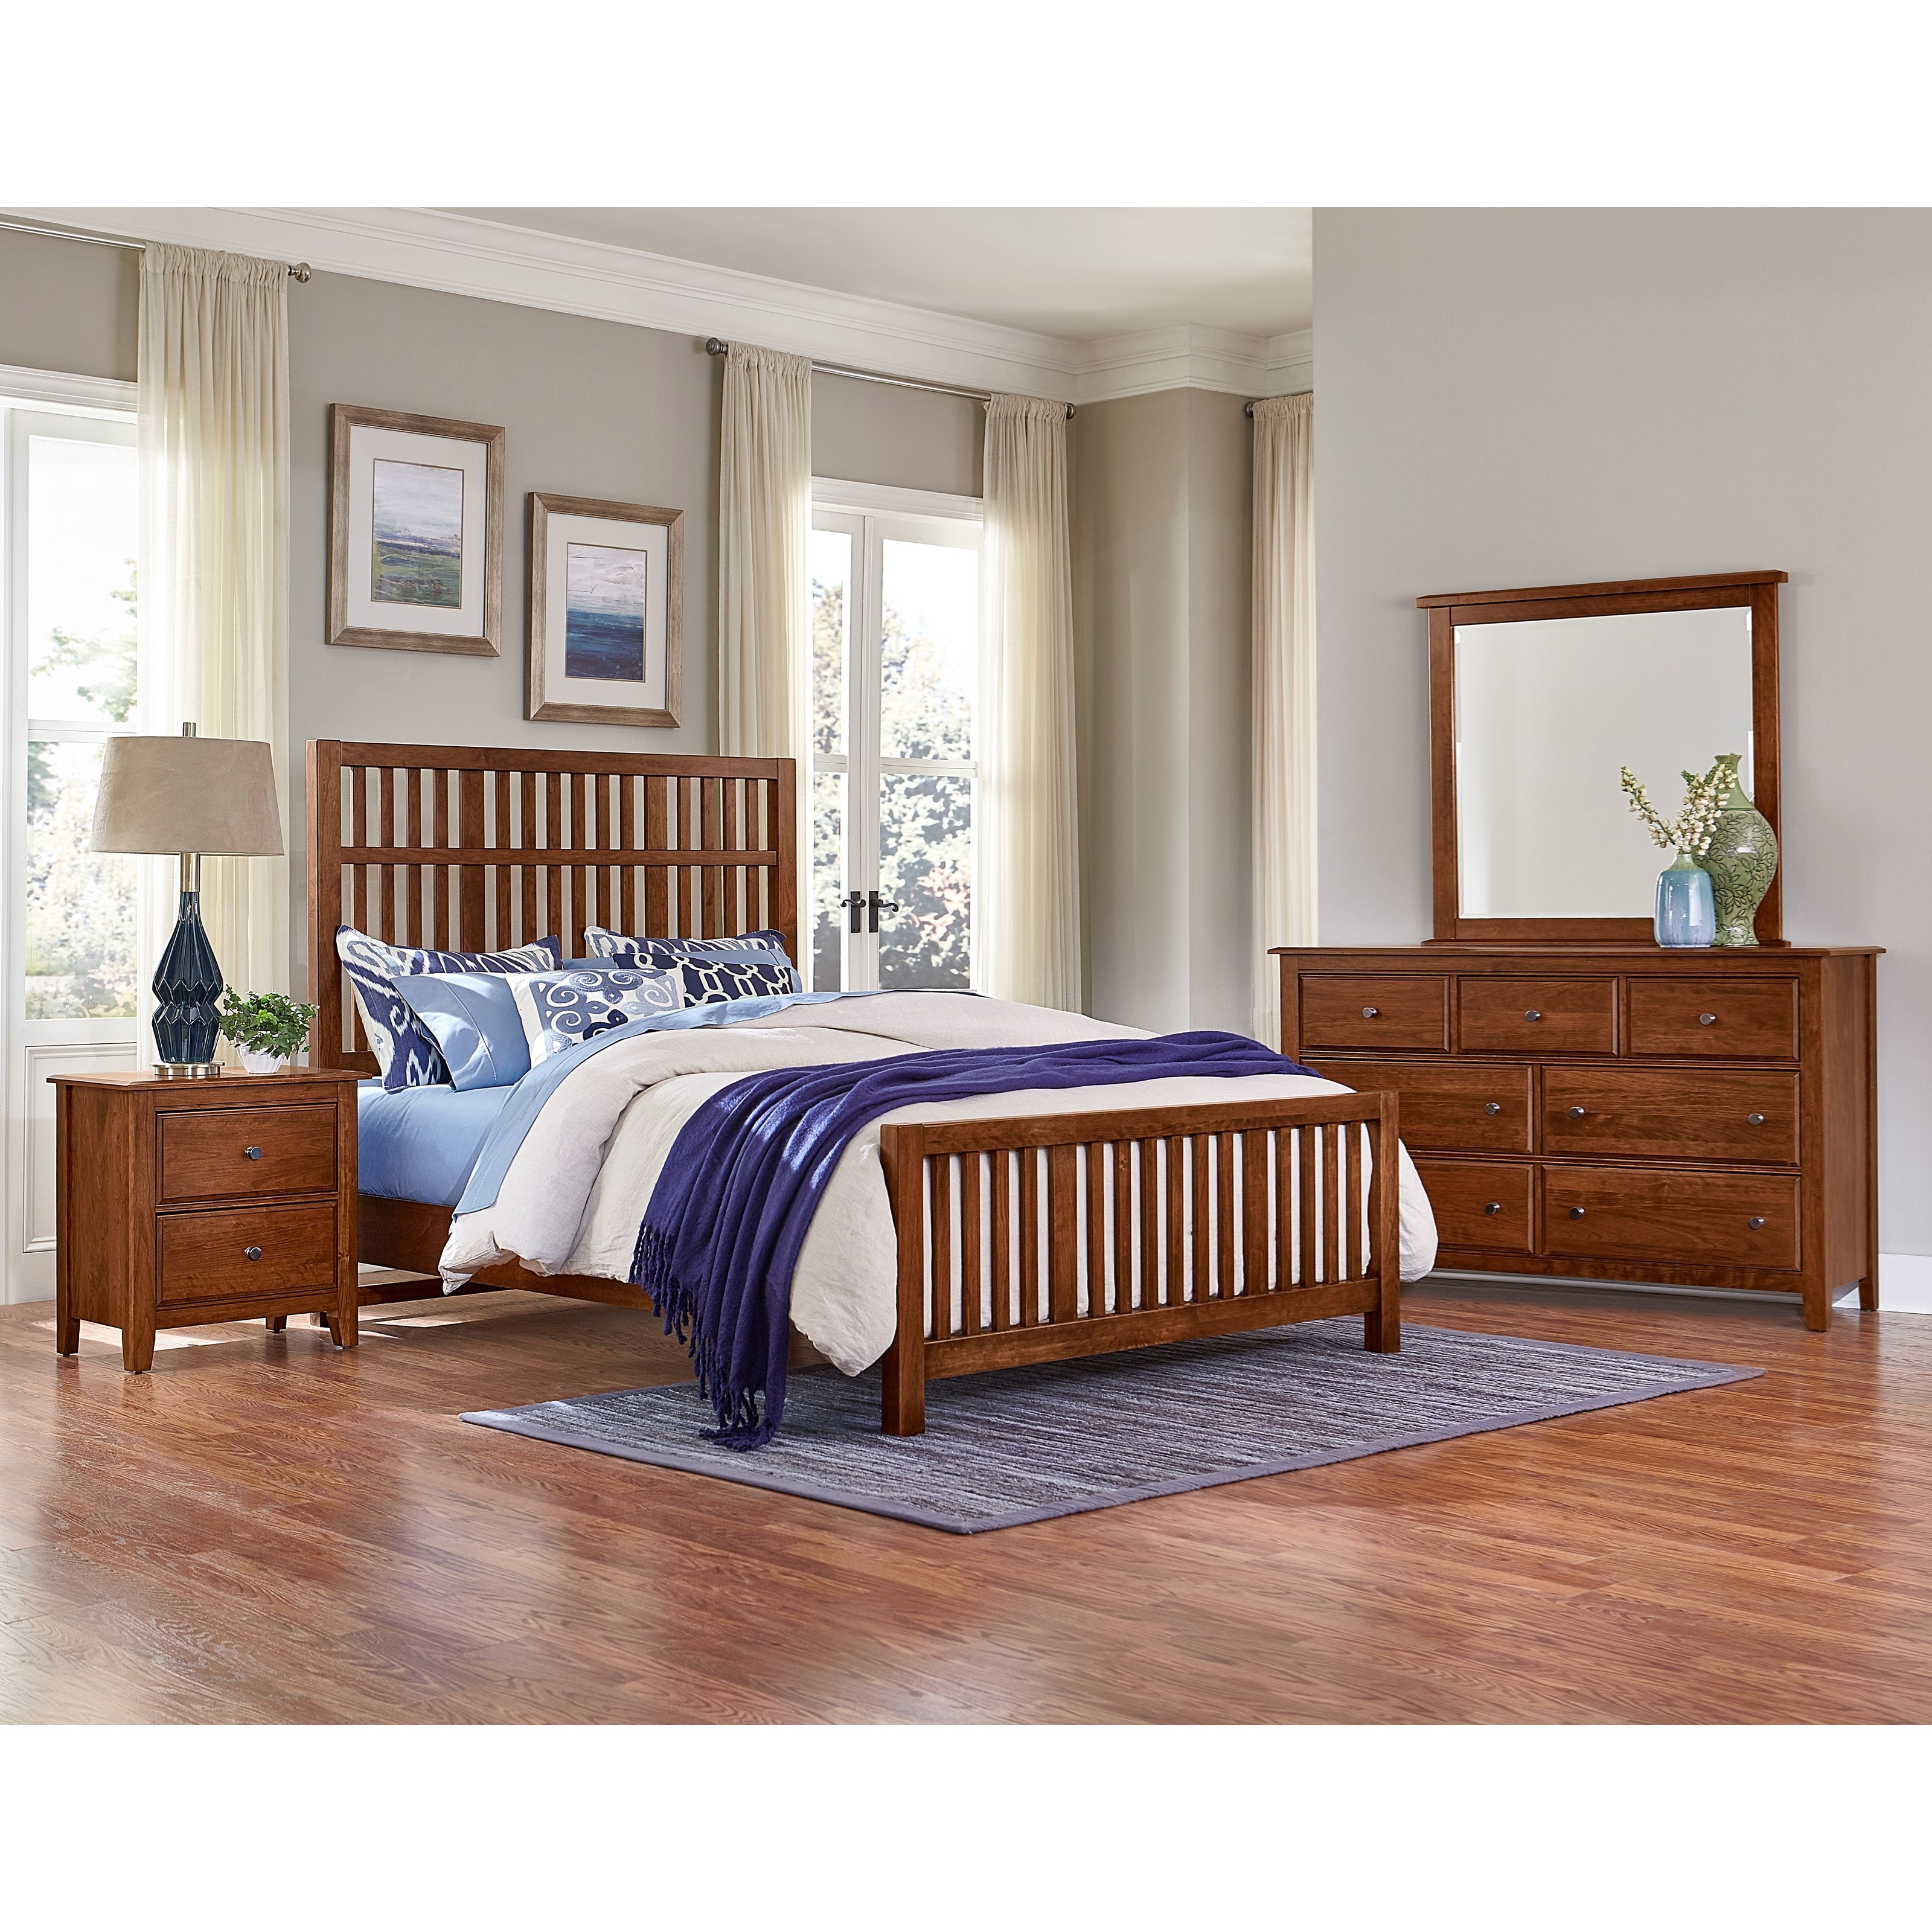 Artisan Choices Queen Bedroom Group by Artisan & Post at Goffena Furniture & Mattress Center